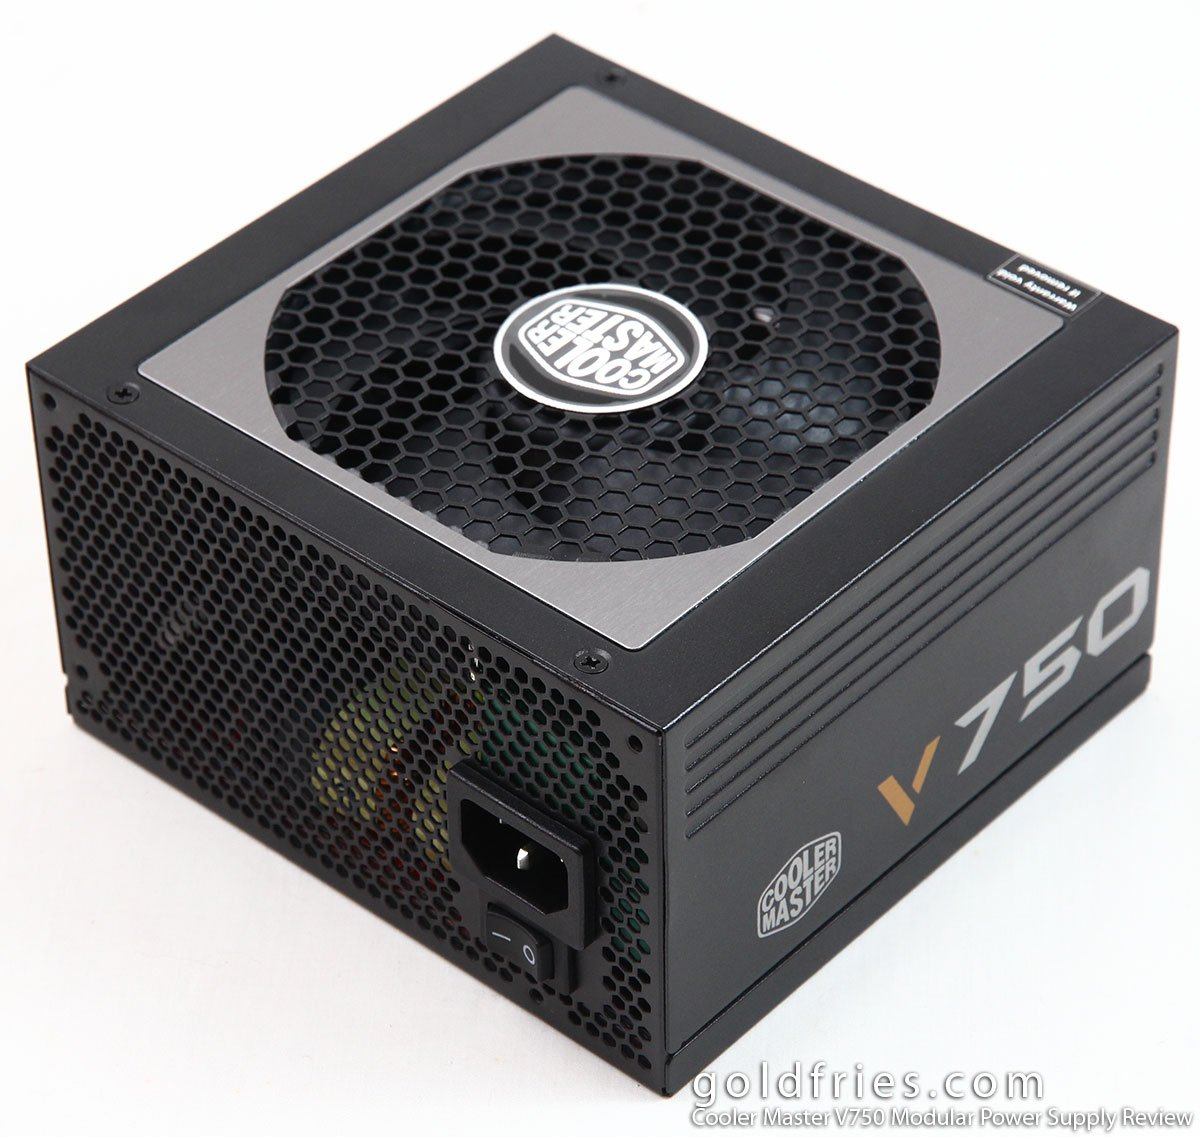 Cooler Master V750 Modular Power Supply Review 4